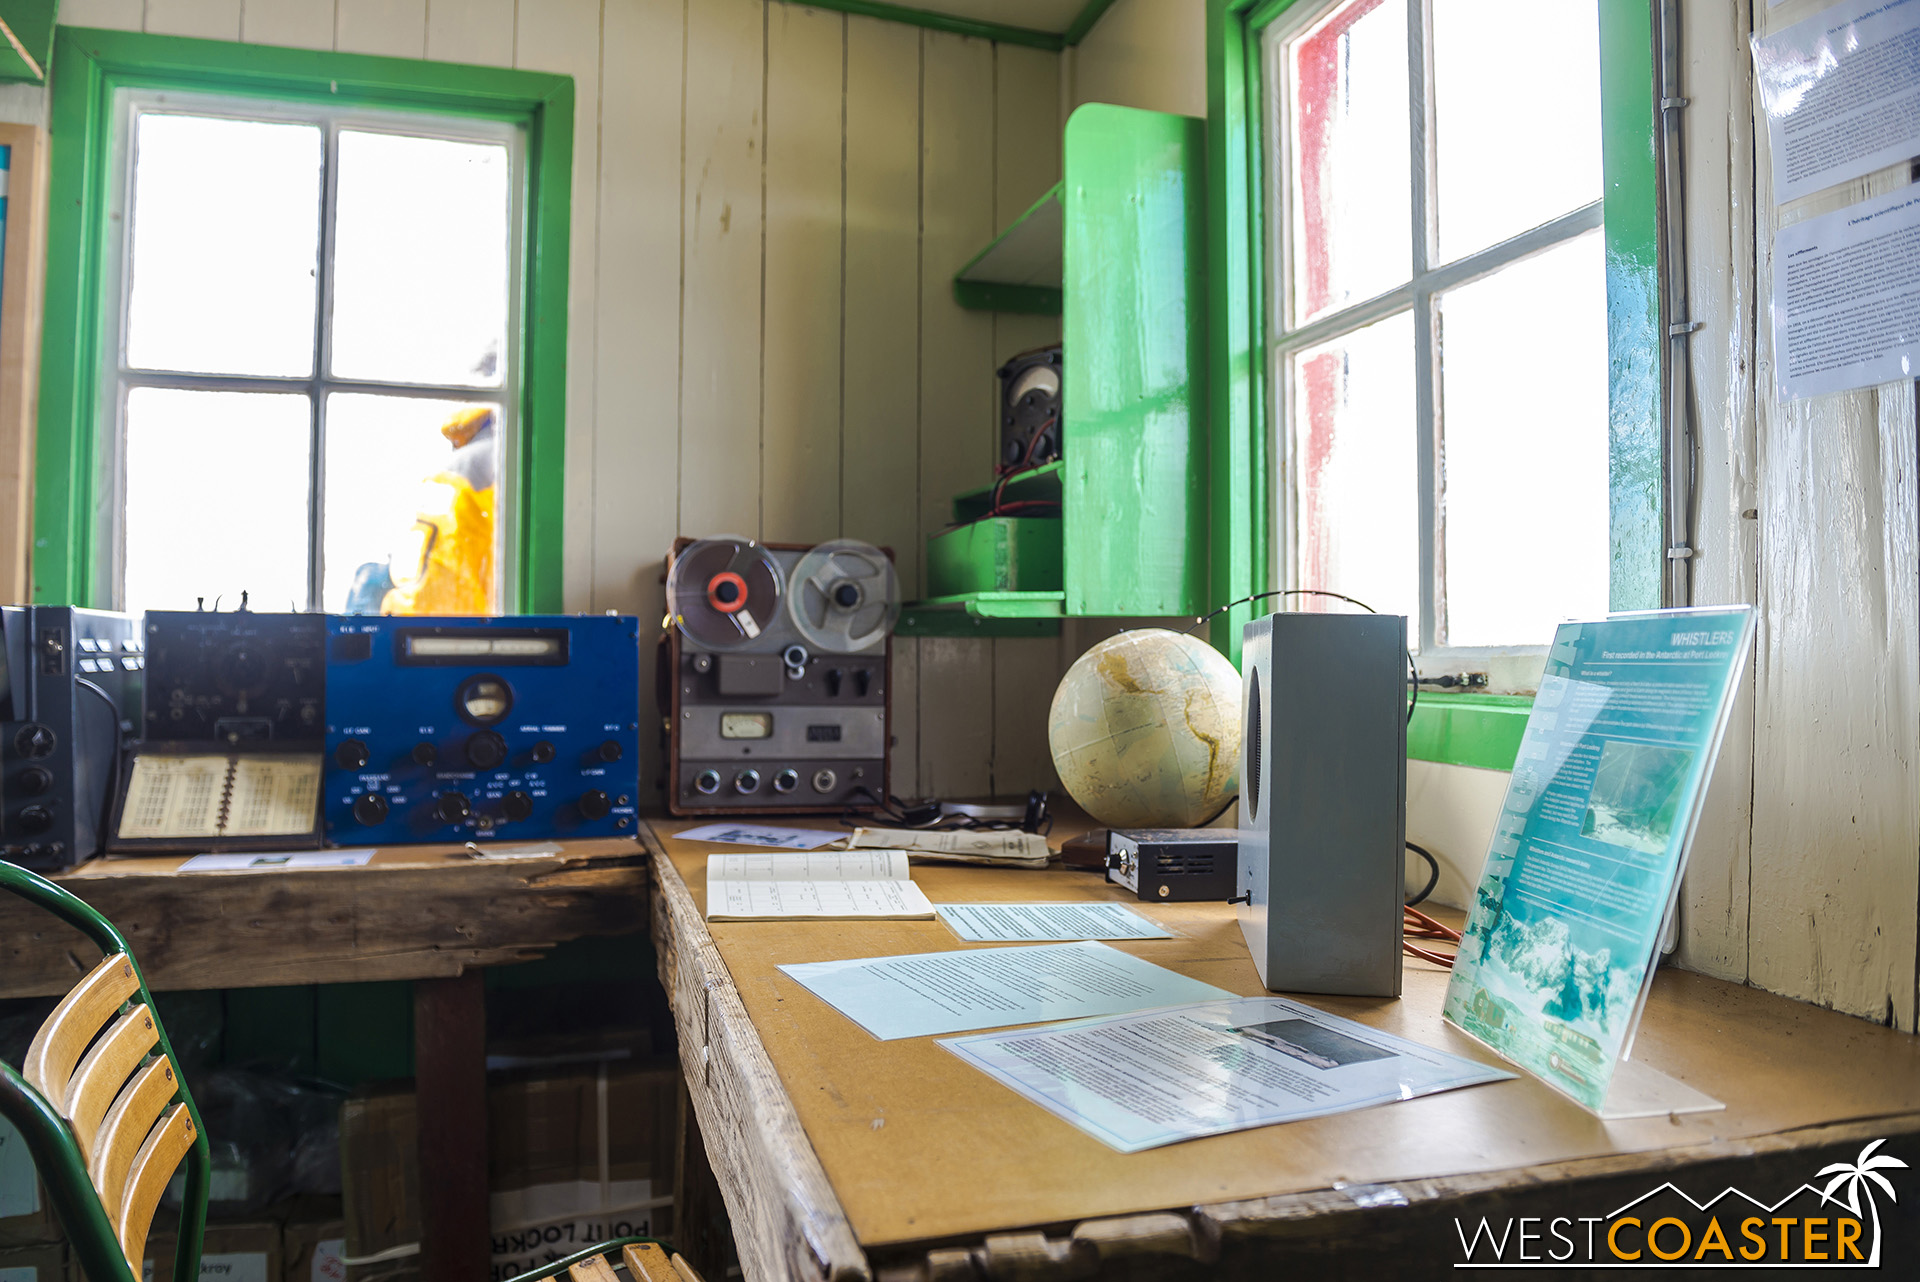 Radio and scientific equipment for observations and communication.